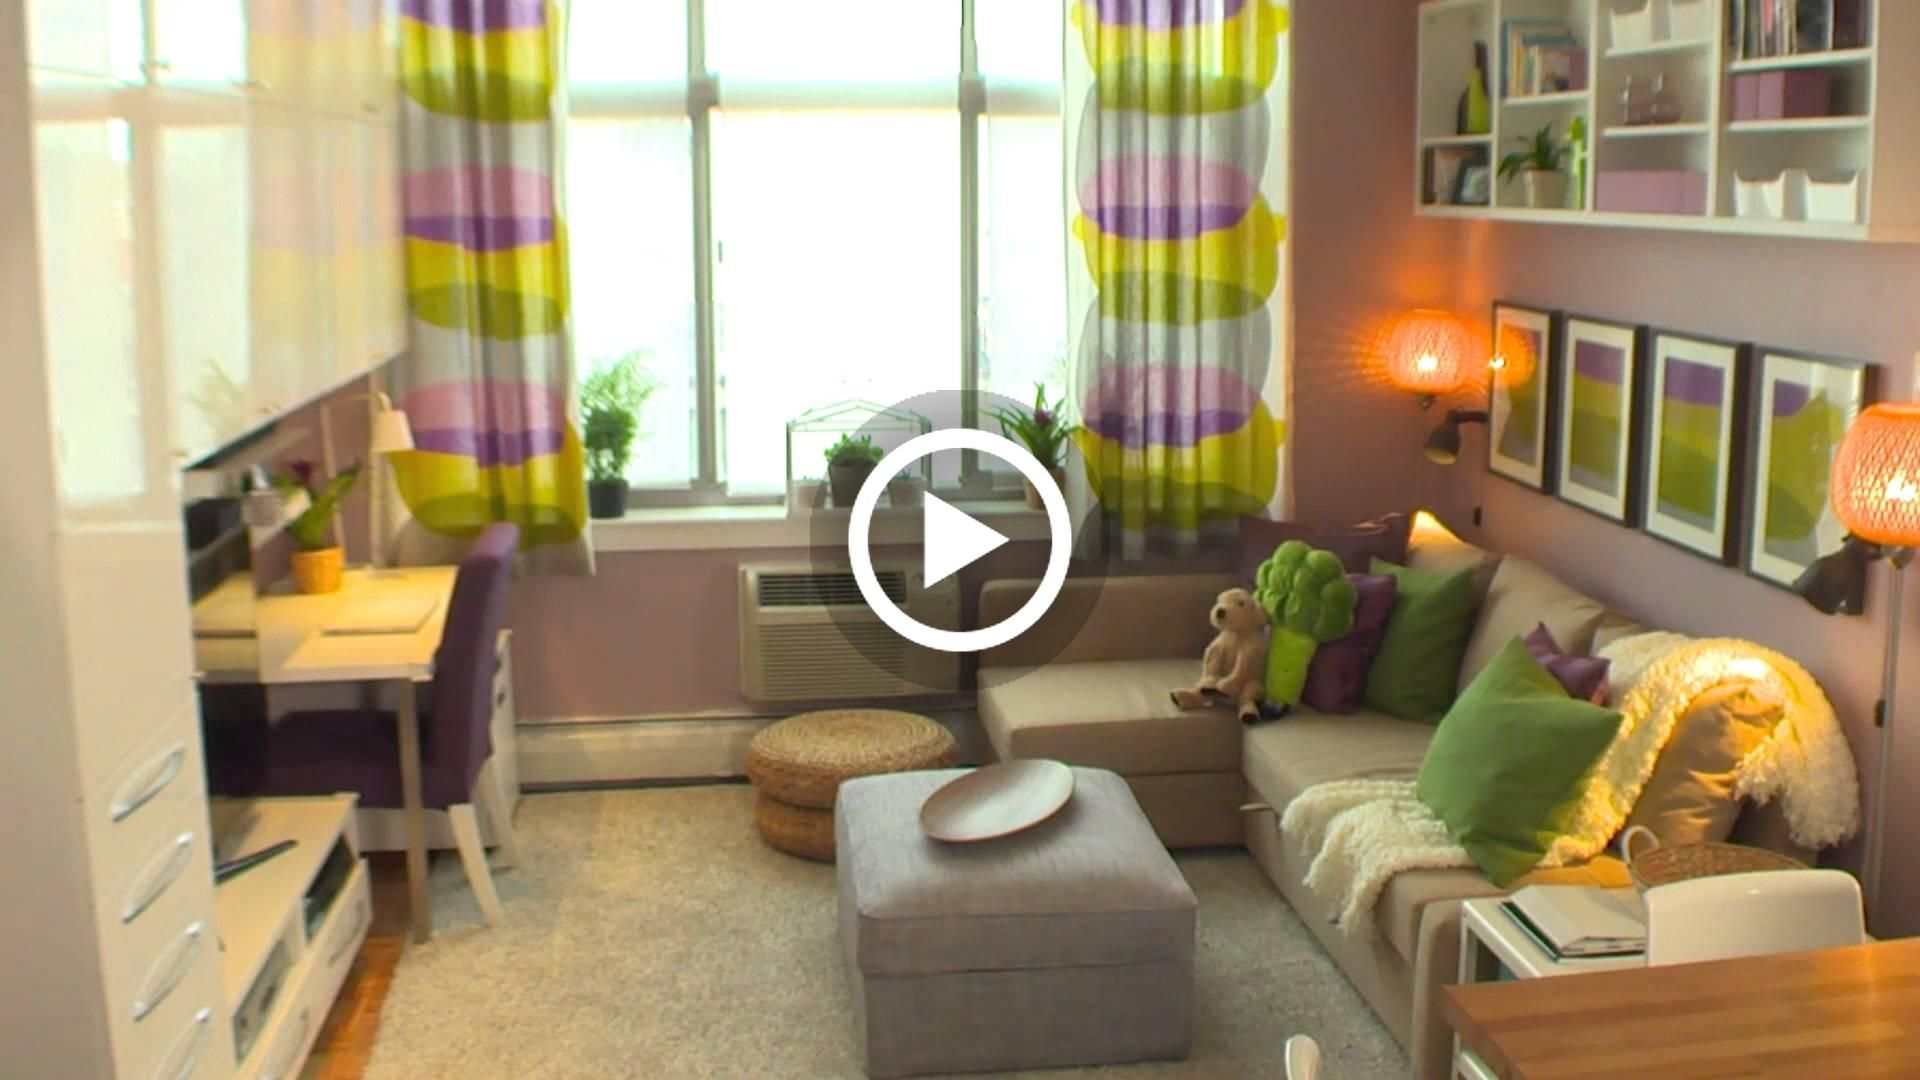 """Living Room Makeover Ideas - IKEA Home Tour (Episode 113) Have a look at the finest decorating looks and concepts in the video: """" Living Room Makeover Ideas - IKEA Home Tour (Episode 113)"""".  Small old rooms..."""